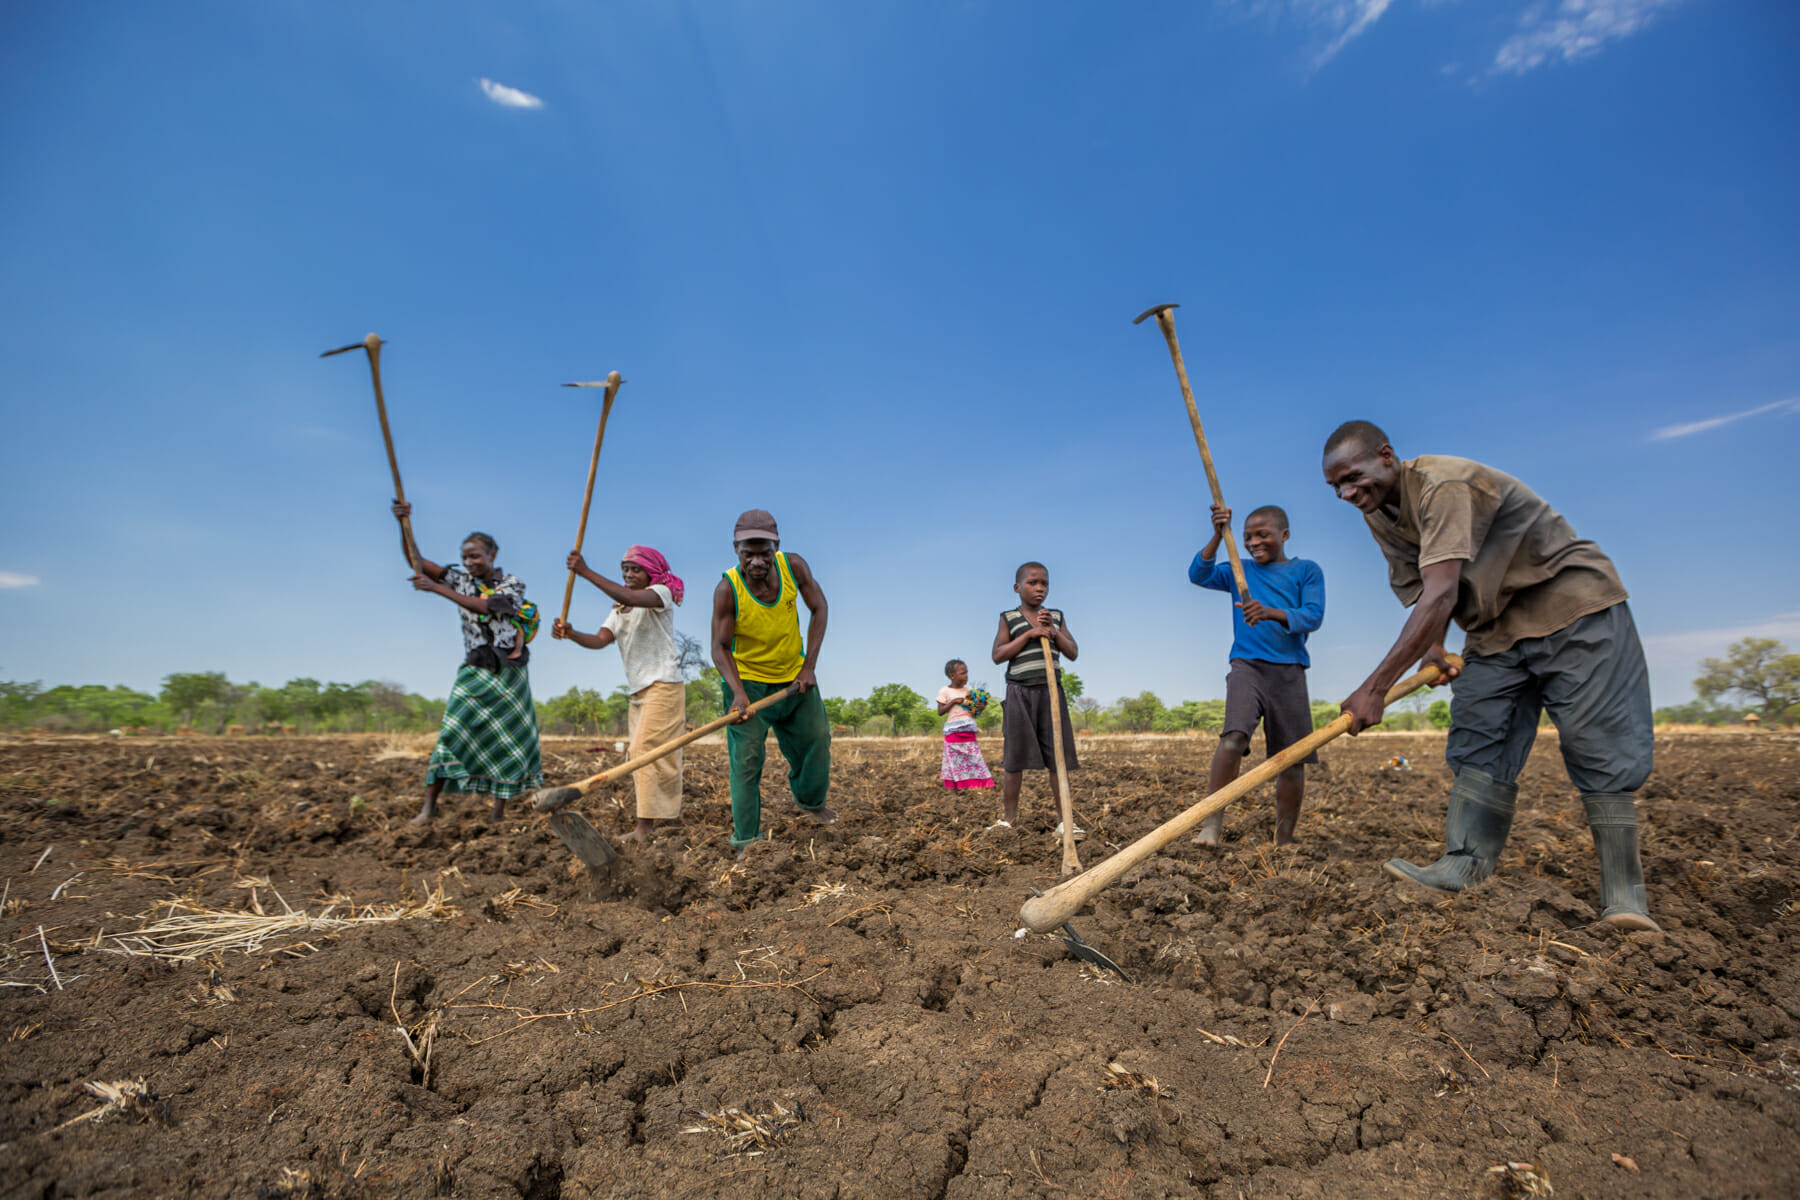 A transformed hunter and his family prepare rice fields for the imminent rains.